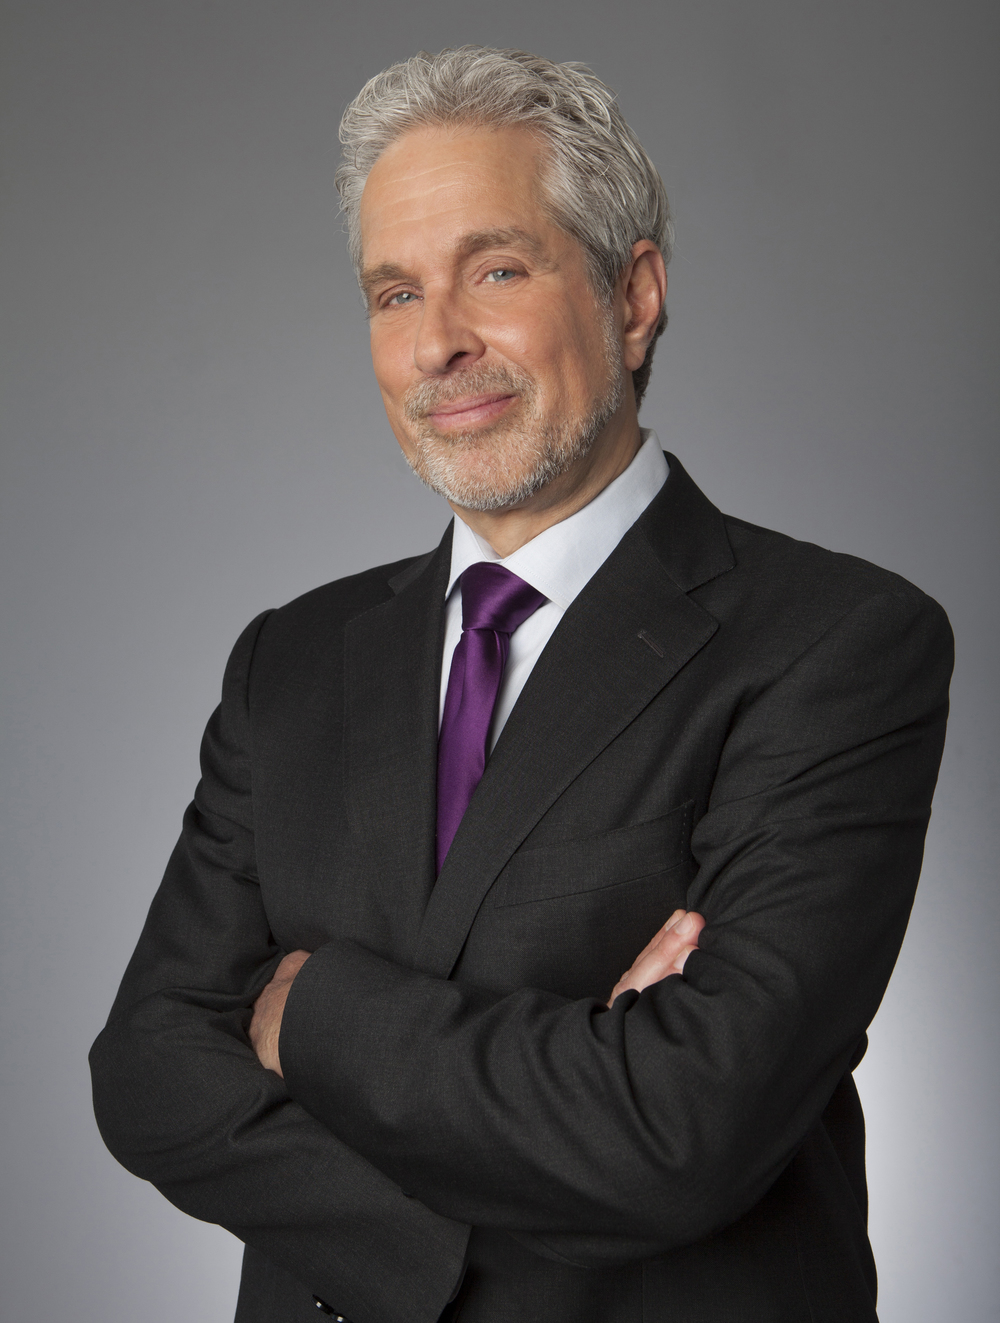 Managing Partner, Marc I. Gross